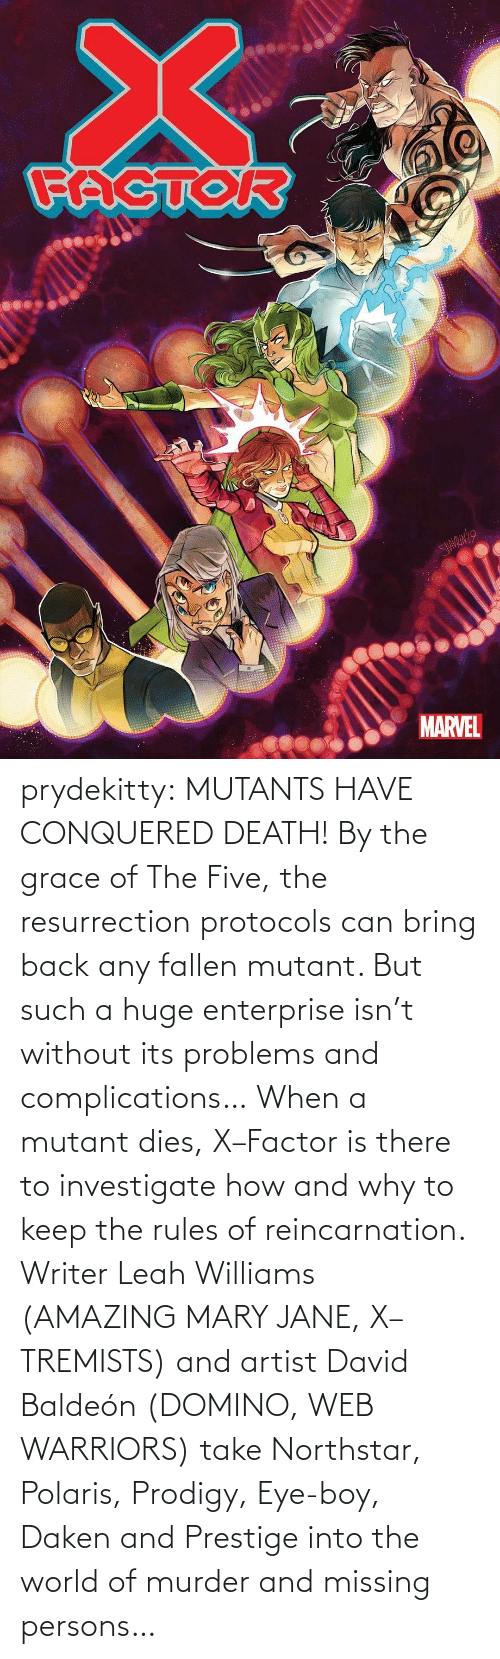 World Of: prydekitty:  MUTANTS HAVE CONQUERED DEATH! By the grace of The Five, the resurrection protocols can bring back any fallen mutant. But such a huge enterprise isn't without its problems and complications… When a mutant dies, X–Factor is there to investigate how and why to keep the rules of reincarnation. Writer Leah Williams (AMAZING MARY JANE, X–TREMISTS) and artist David Baldeón (DOMINO, WEB WARRIORS) take Northstar, Polaris, Prodigy, Eye-boy, Daken and Prestige into the world of murder and missing persons…